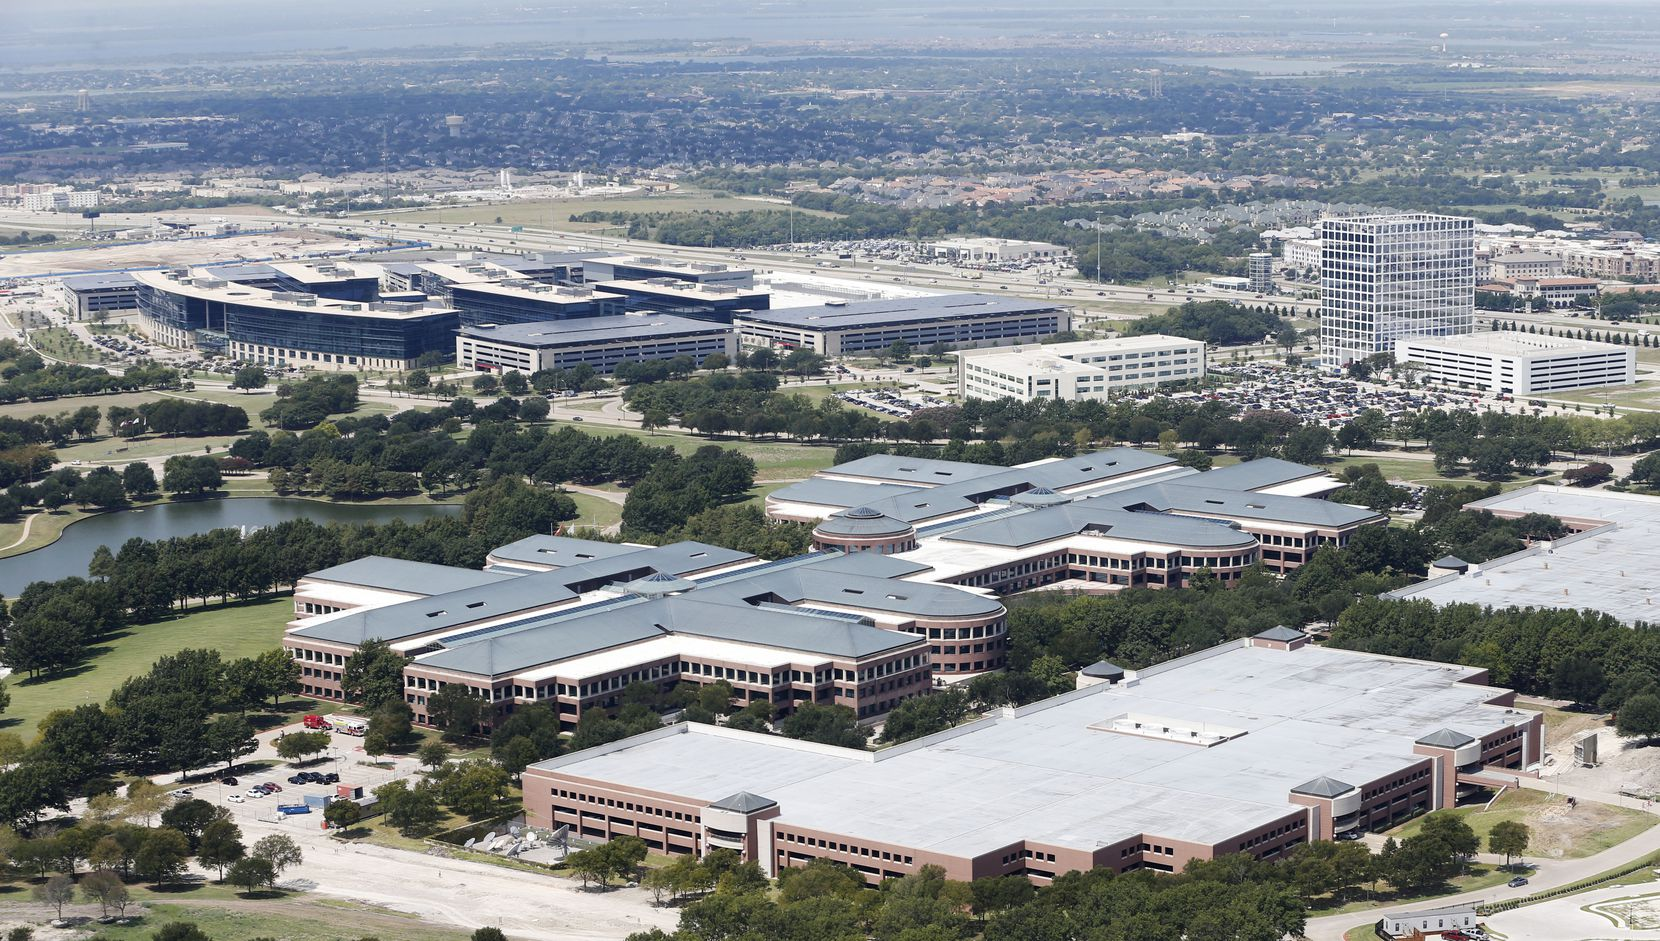 JCPenney headquarters in Plano  is next door to Toyota Motor's North America headquarters. The almost 30-year-old Penney campus is being redeveloped into a mixed-use project.